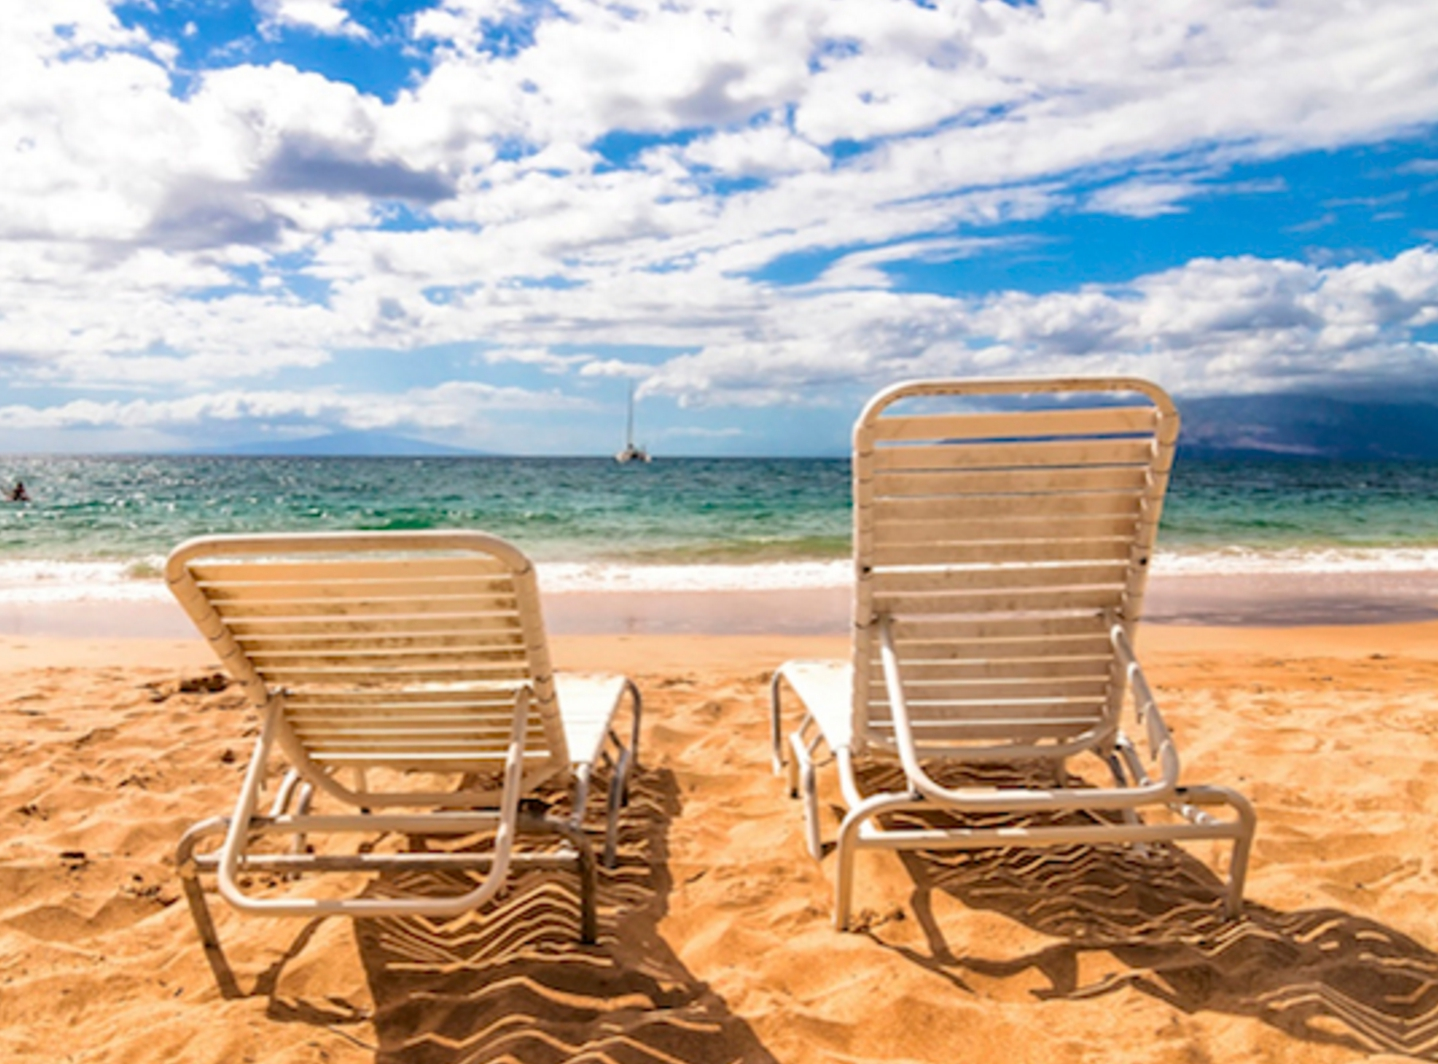 Image from MauiAccommodations.com.